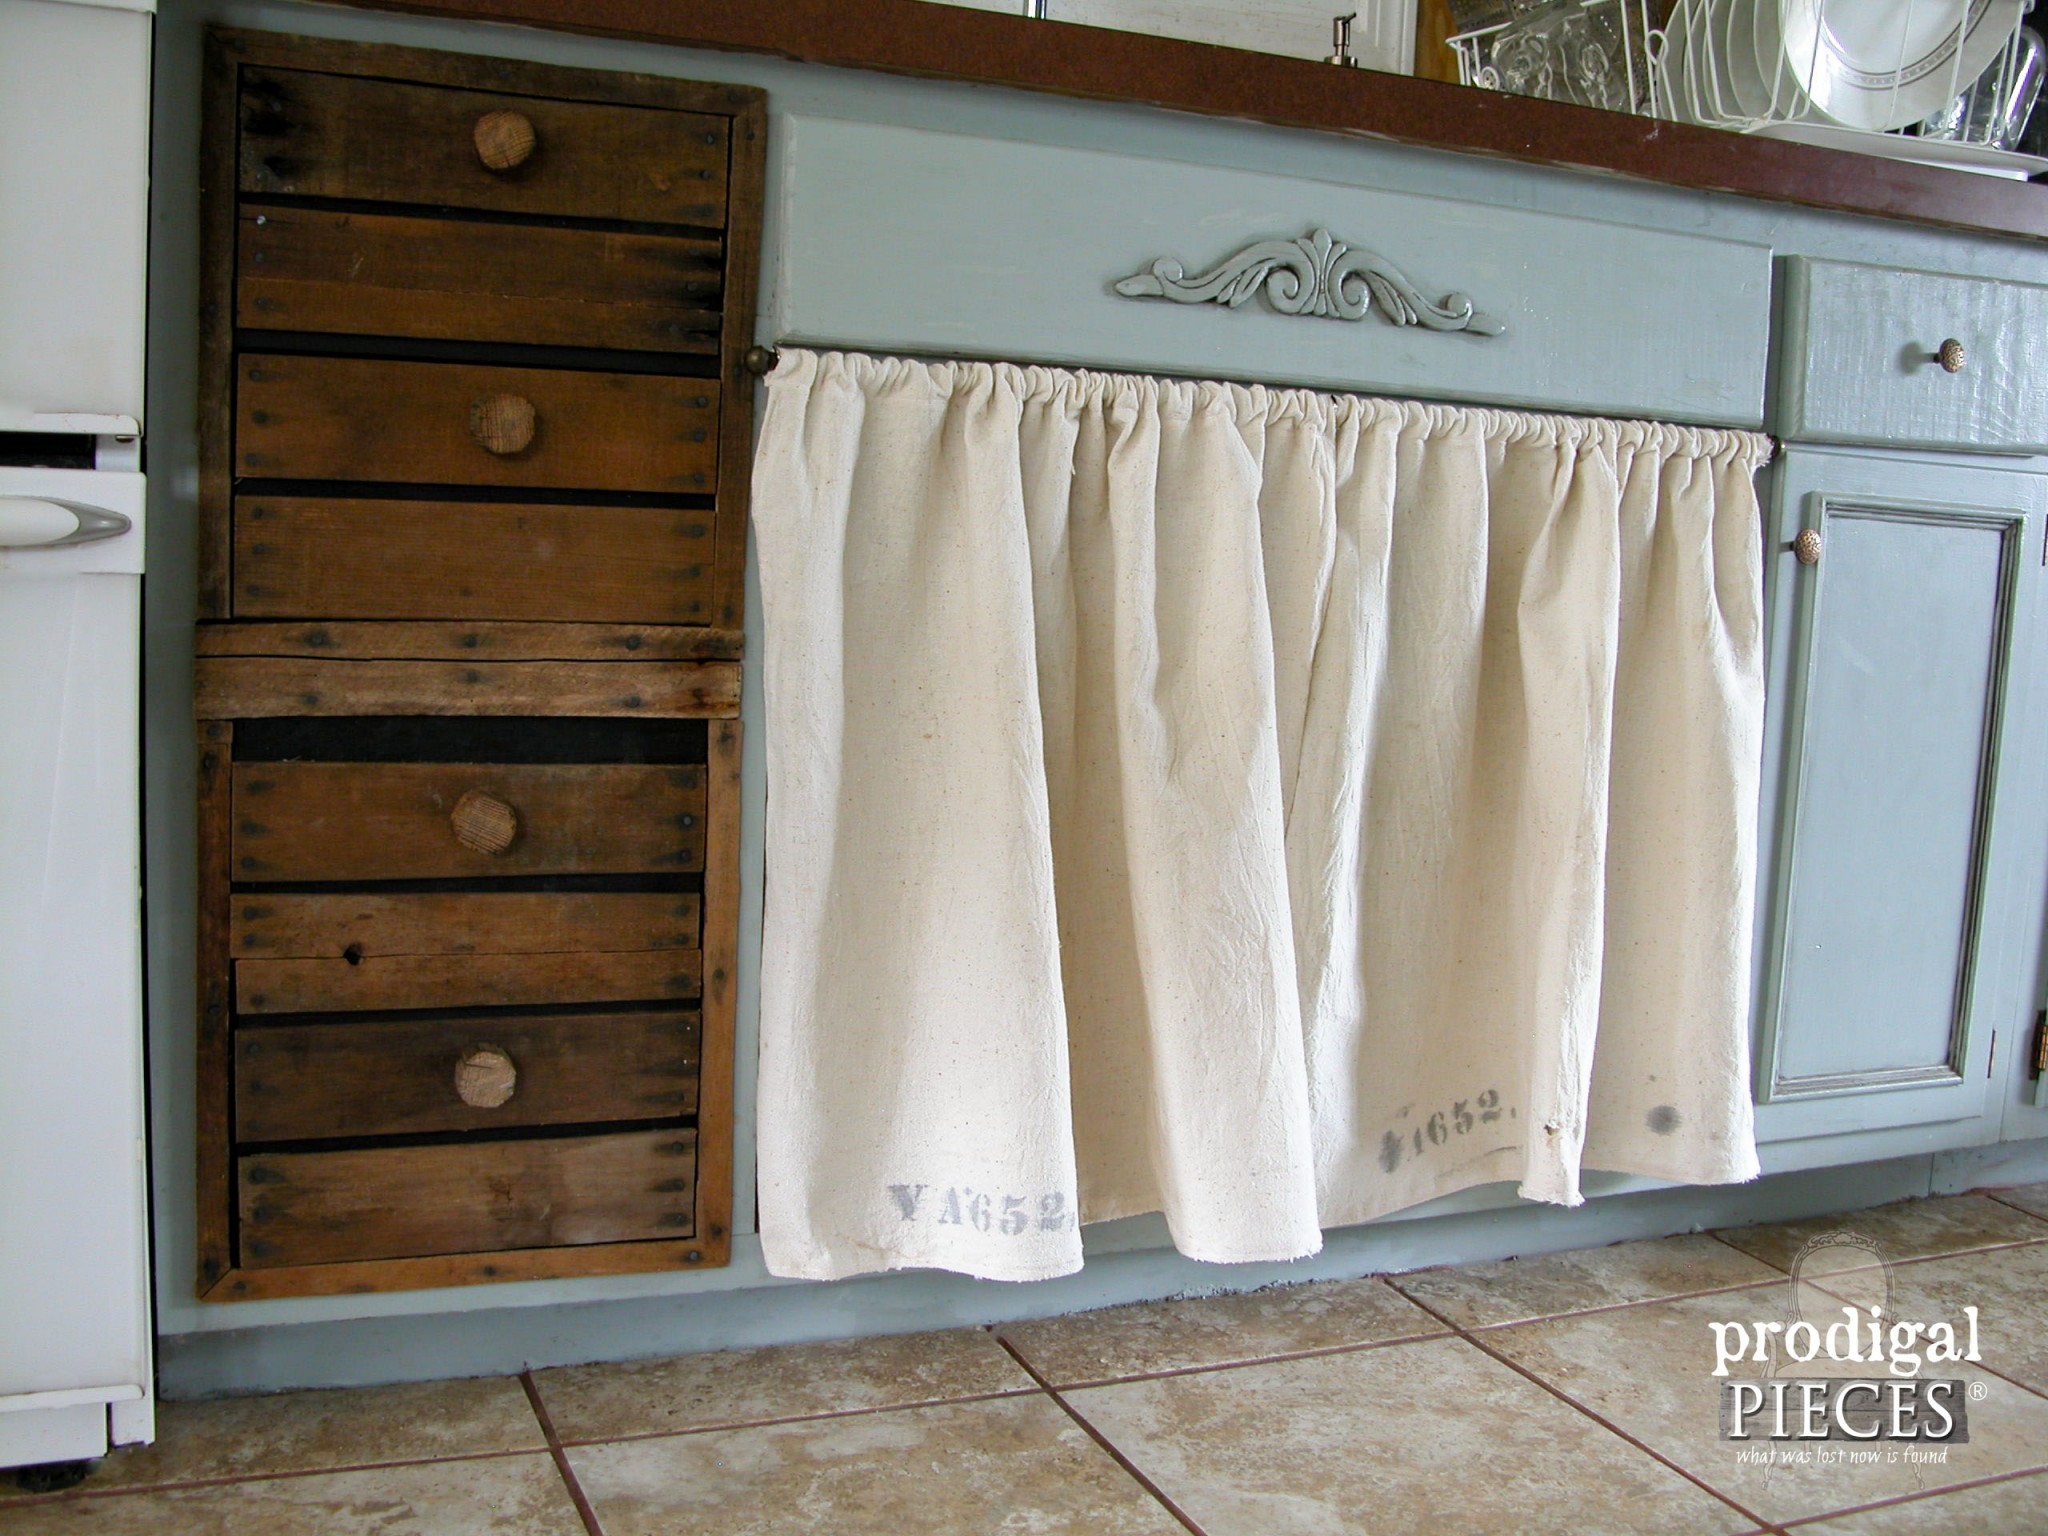 Rustic Farmhouse Style Kitchen Drawers with Skirted Sink | Prodigal Pieces | www.prodigalpieces.com